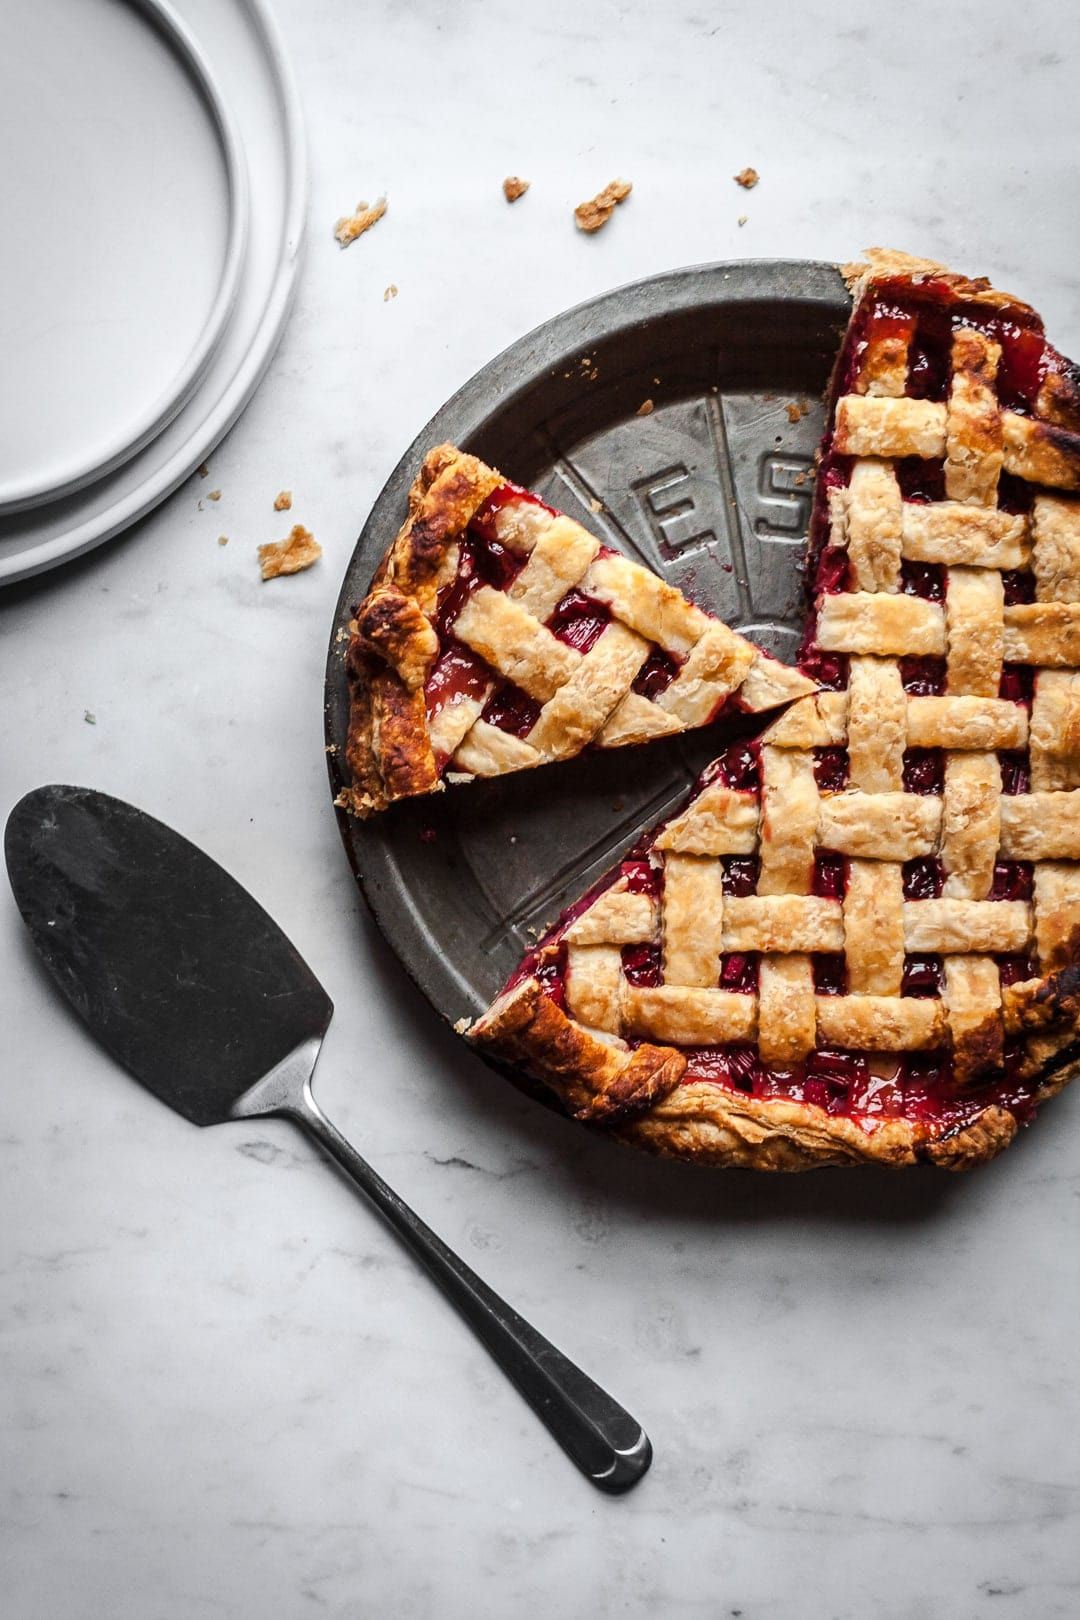 Top view of lattice crust pie with two slices cut out and serving utensil and plates nearby